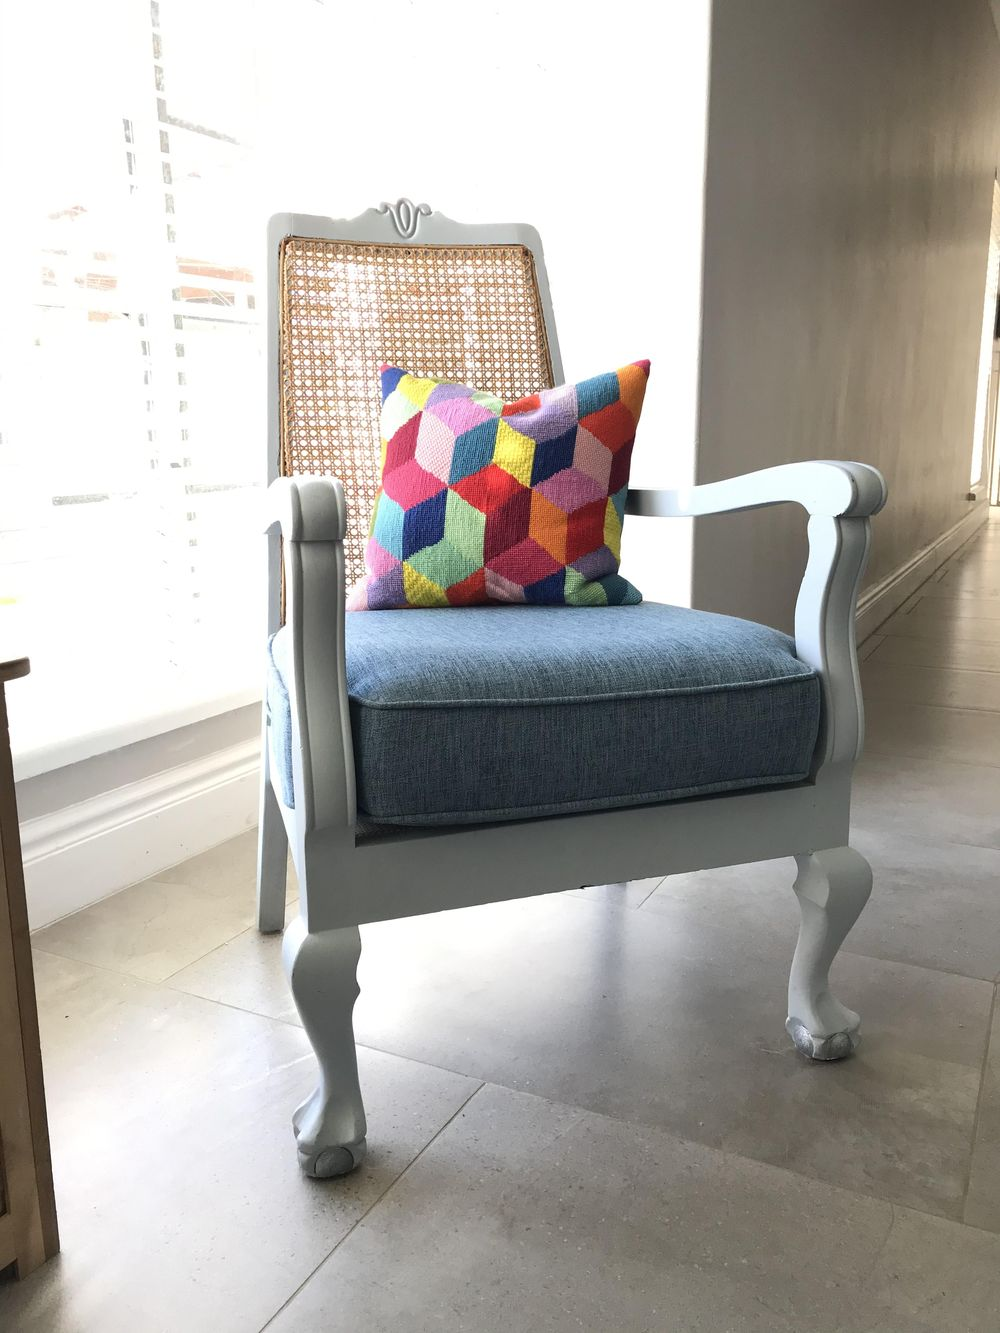 Chair makeover - image 2 - student project